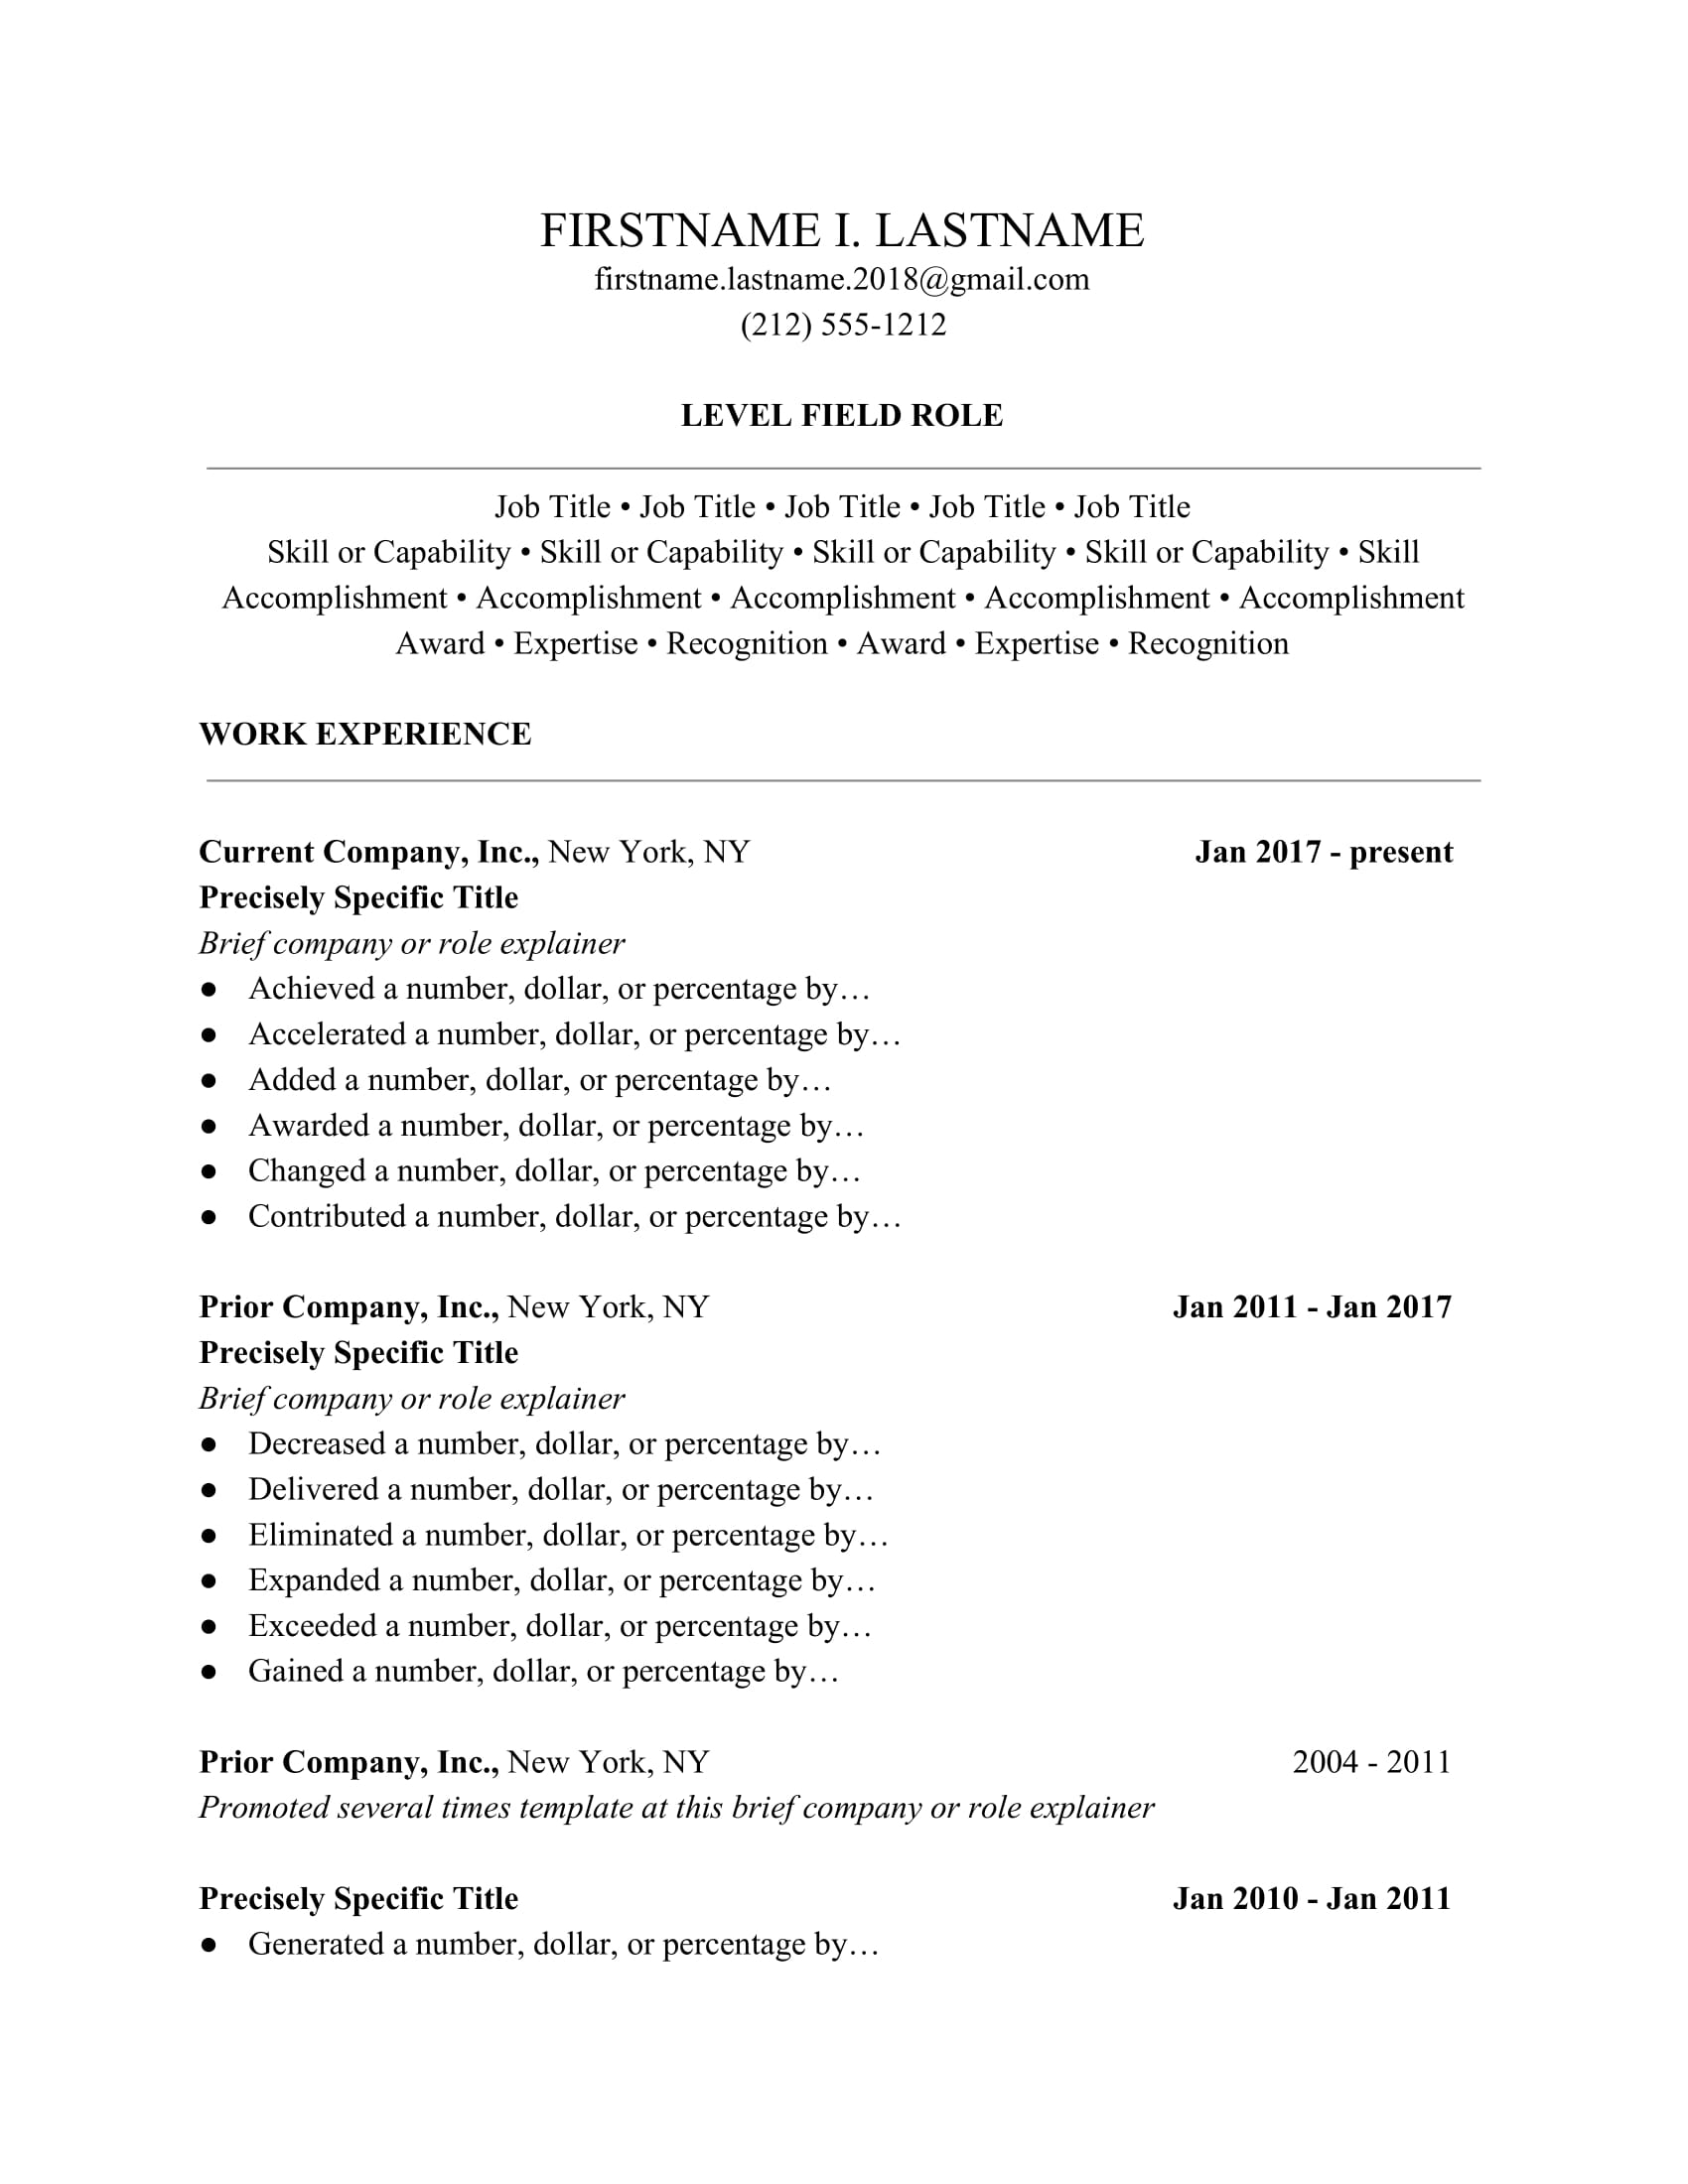 ladders 2018 resume guide